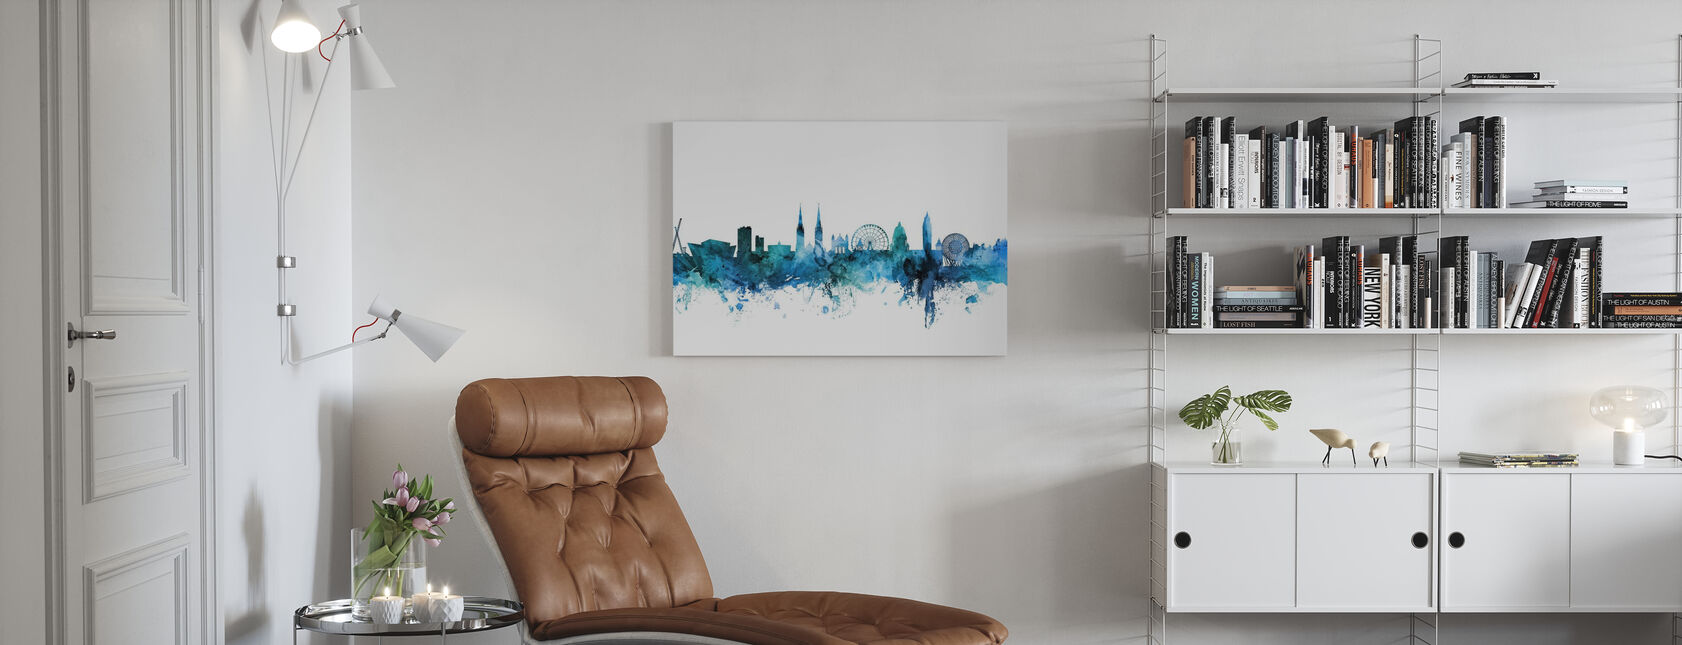 Belfast Northern Ireland Skyline - Canvas print - Living Room